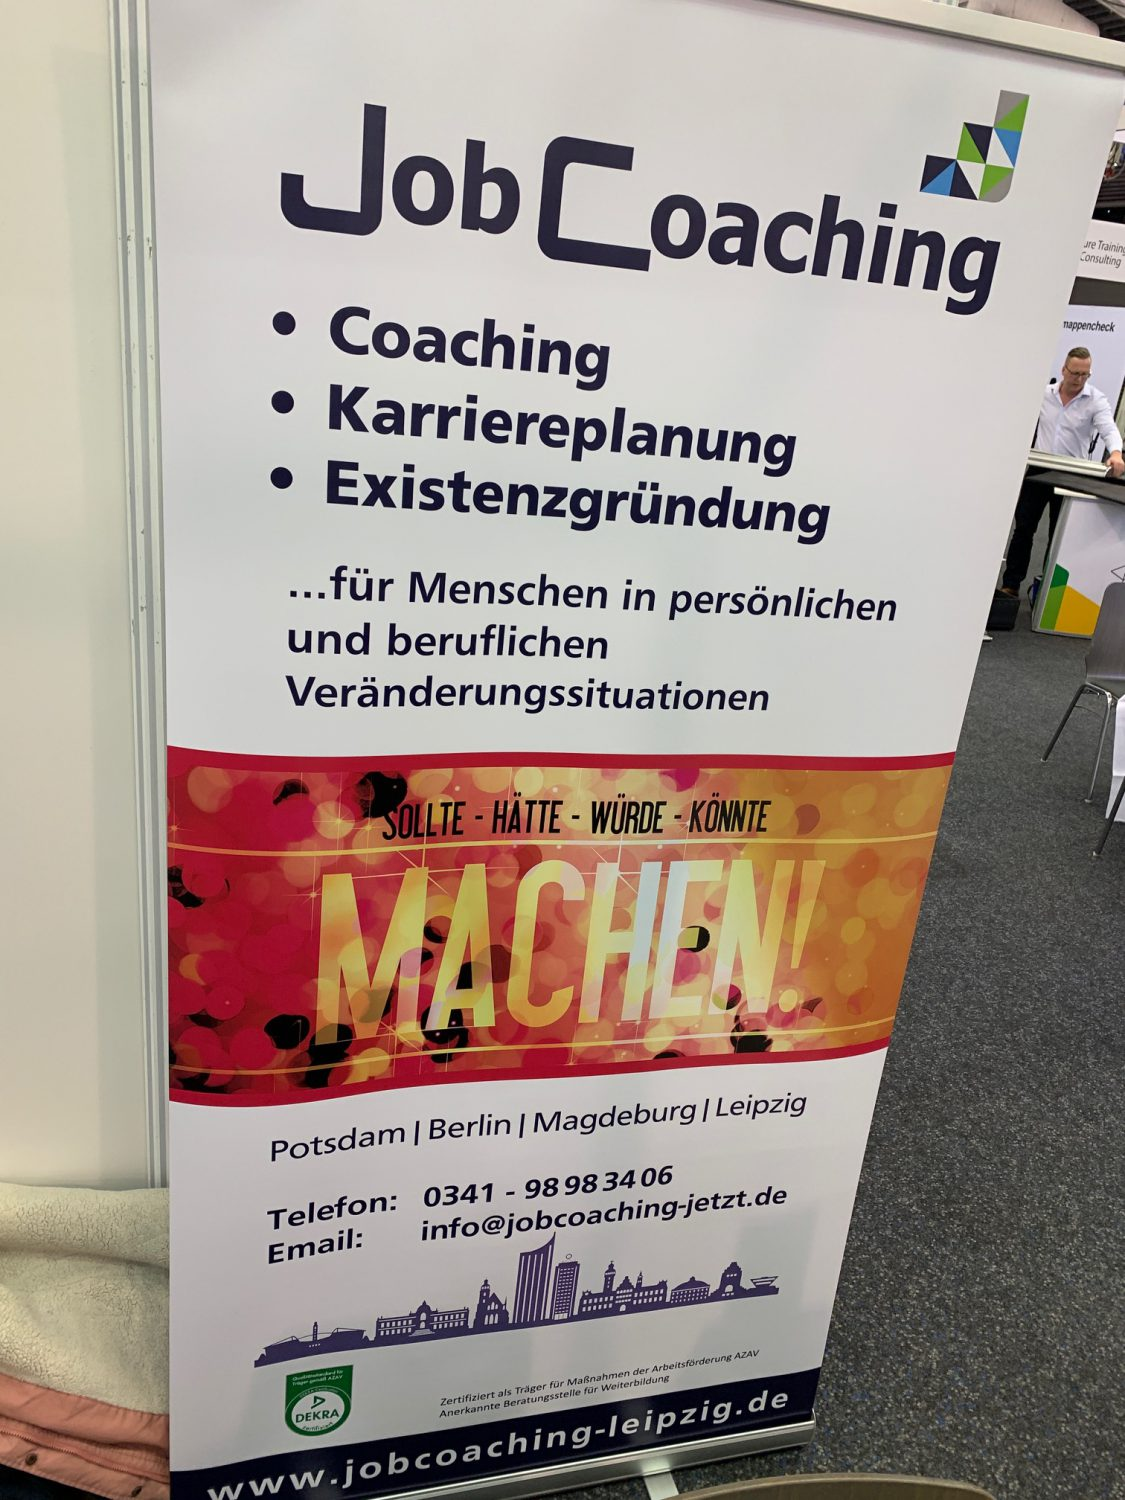 JOBregional am 28. Februar 2020 im GLOBANA Messe & Conference Center in Schkeuditz